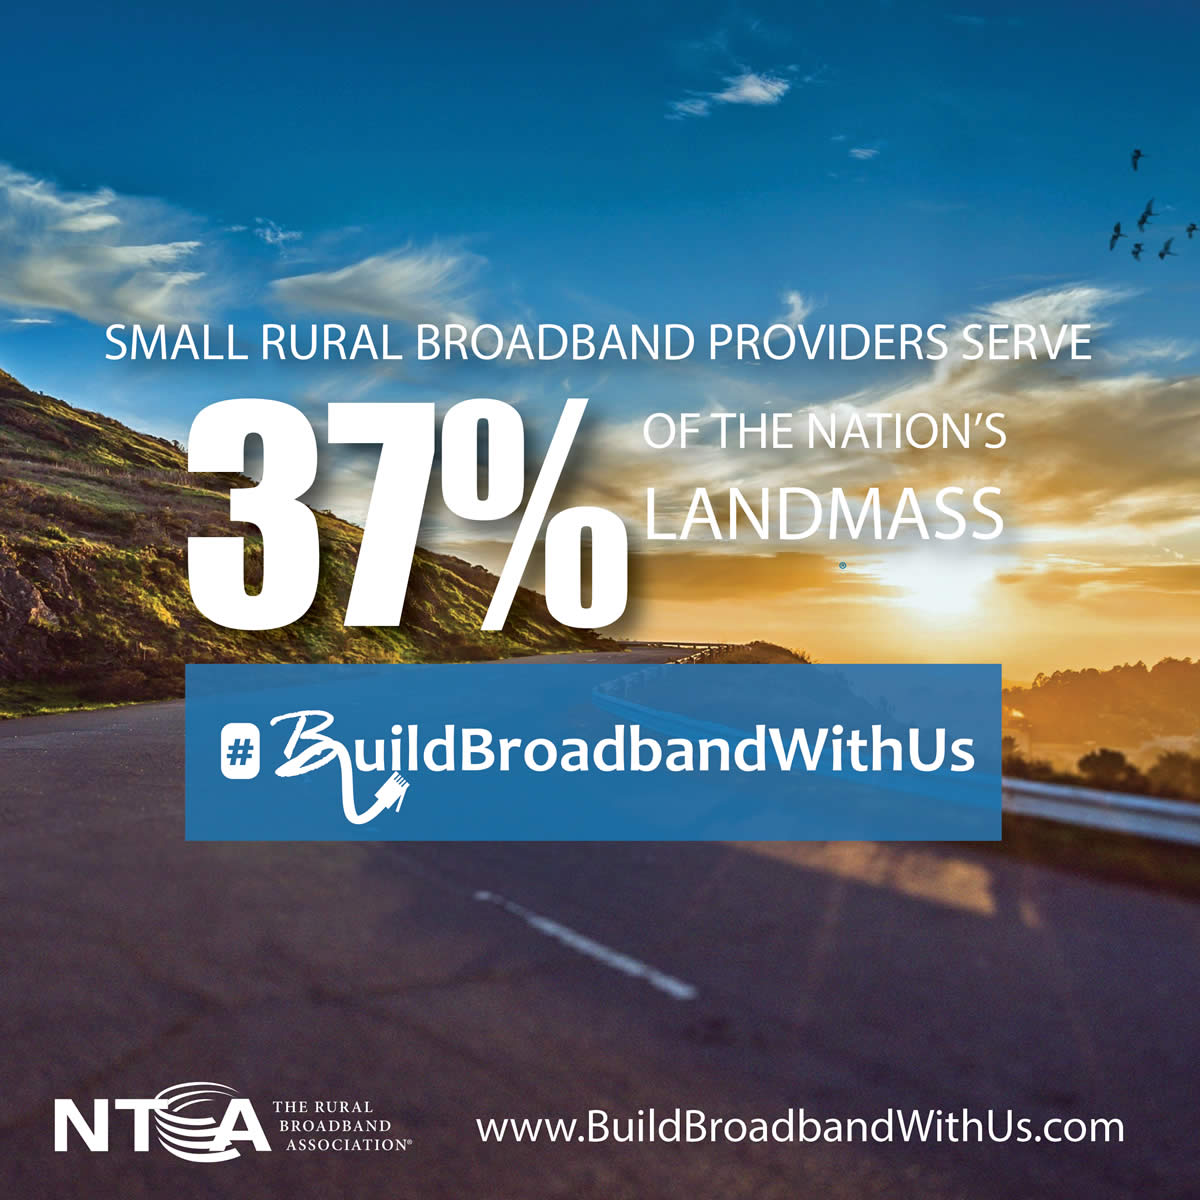 Small Rural broadband providers serve 37% of the nation's landmass